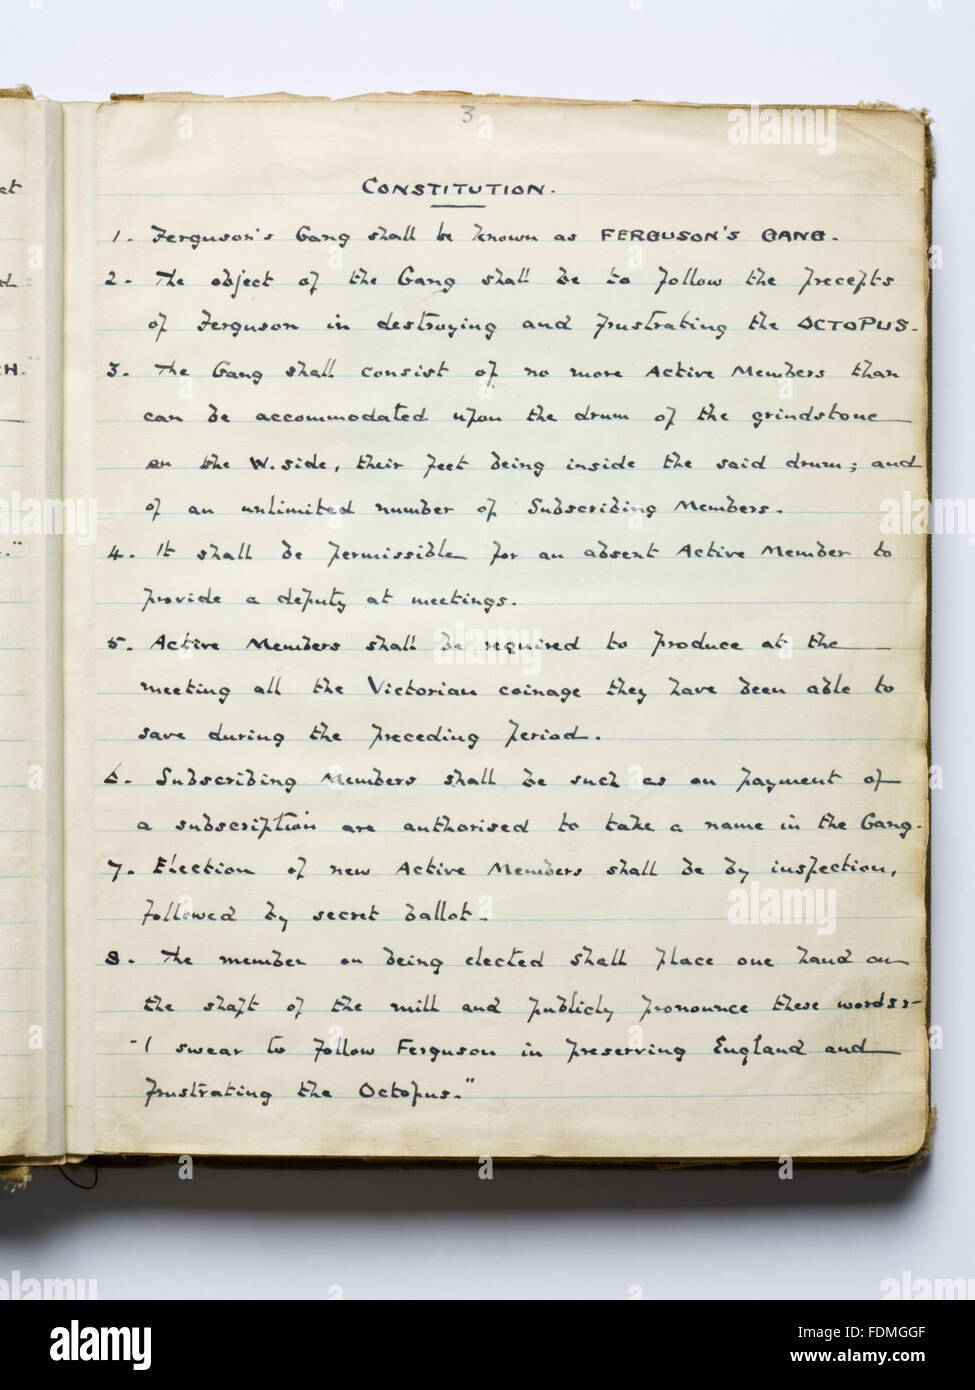 Photograph of the hand-written constitution in the 'Boo' (book) of Ferguson's Gang who were a group - Stock Image